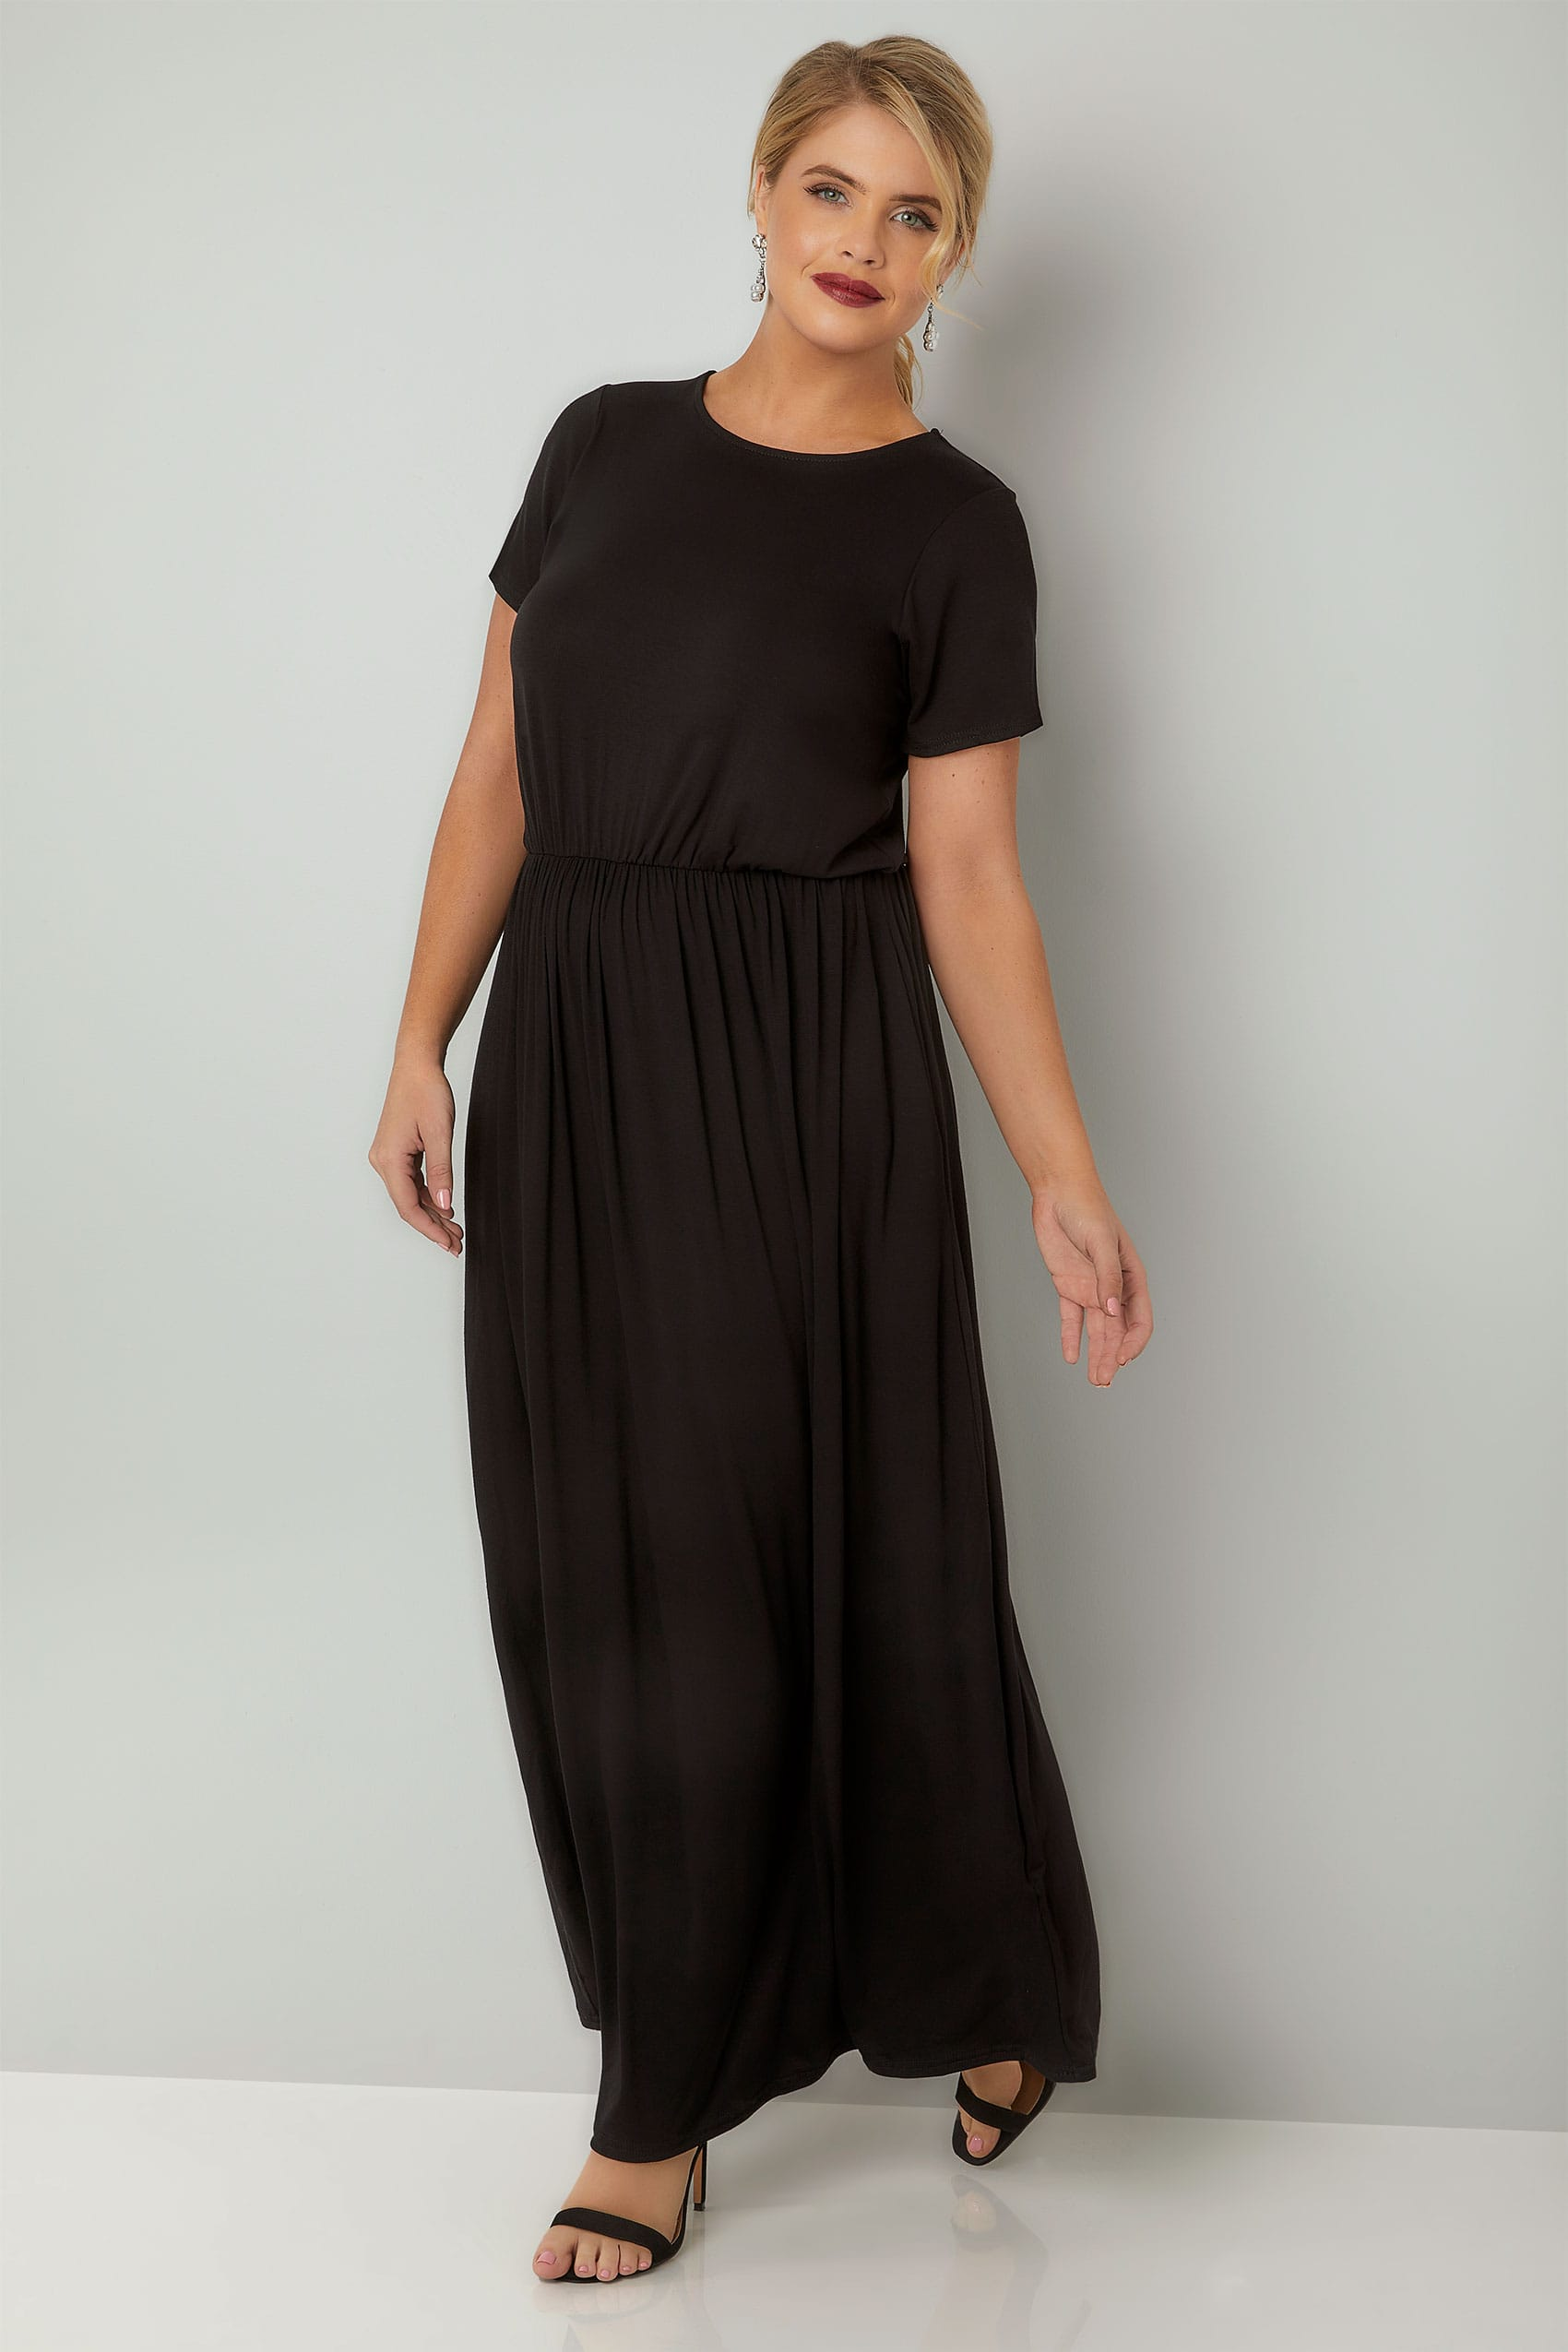 Plus Size Long Black Dress – Fashion dresses